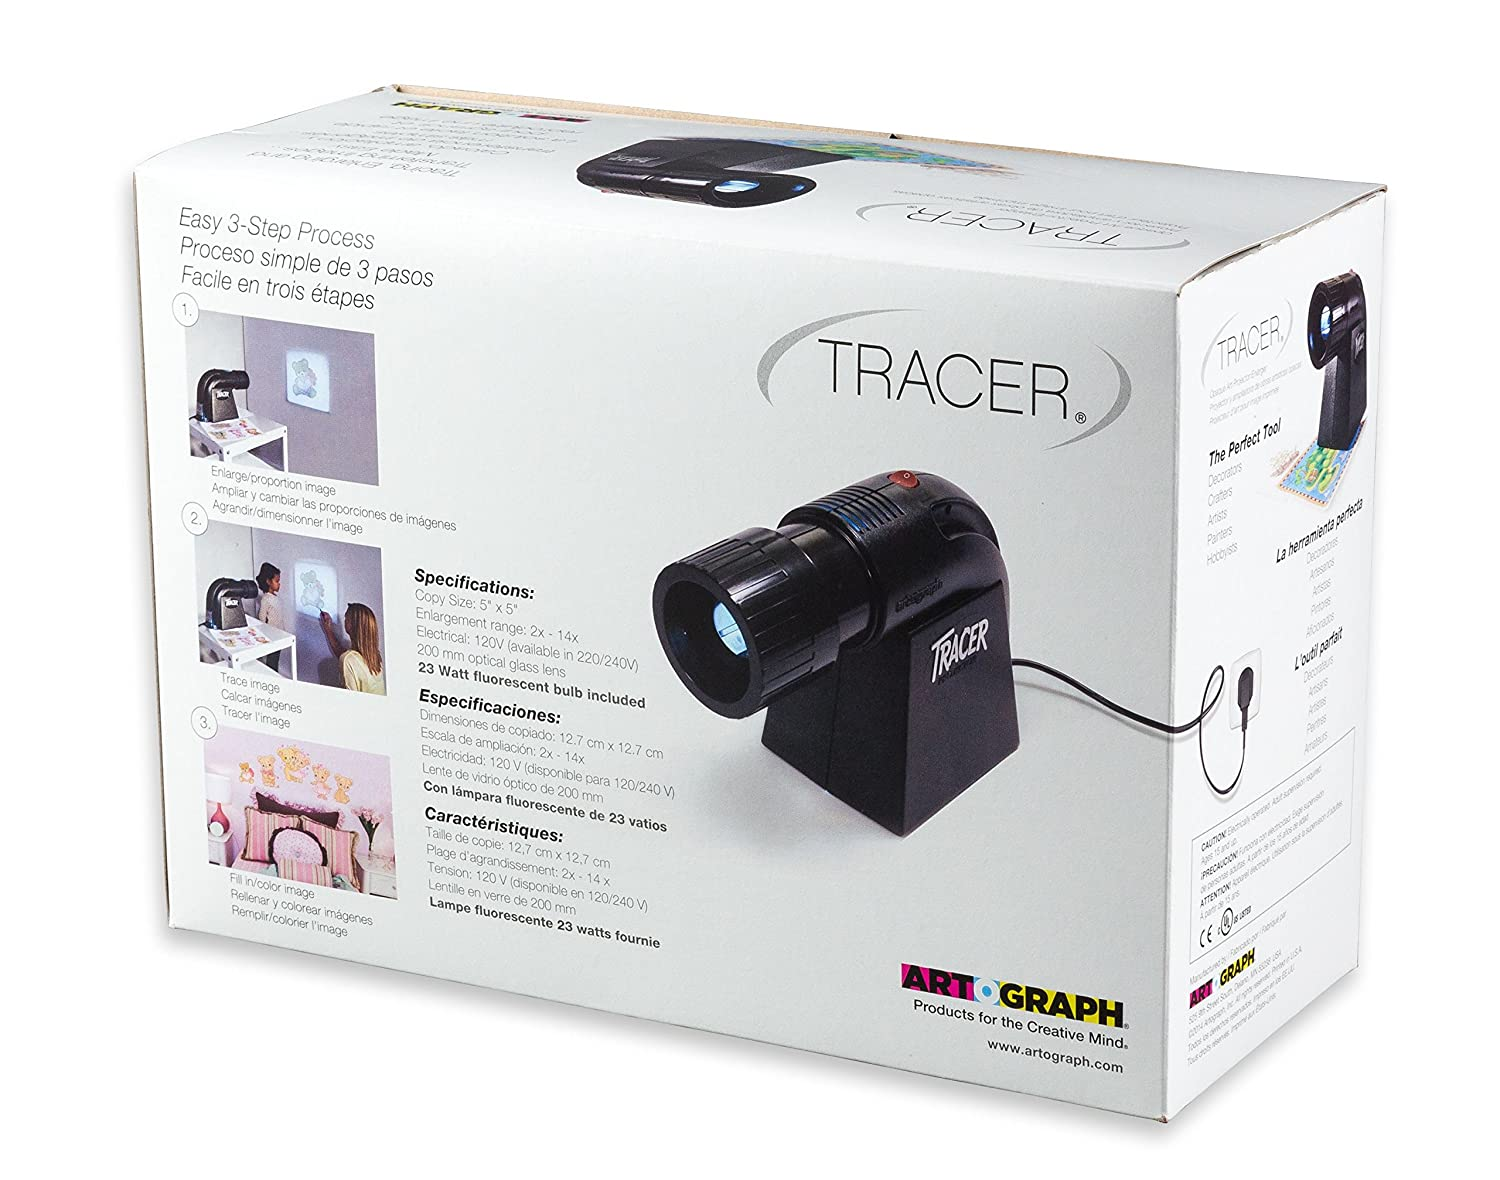 amazon com artograph tracer projector and enlarger arts crafts